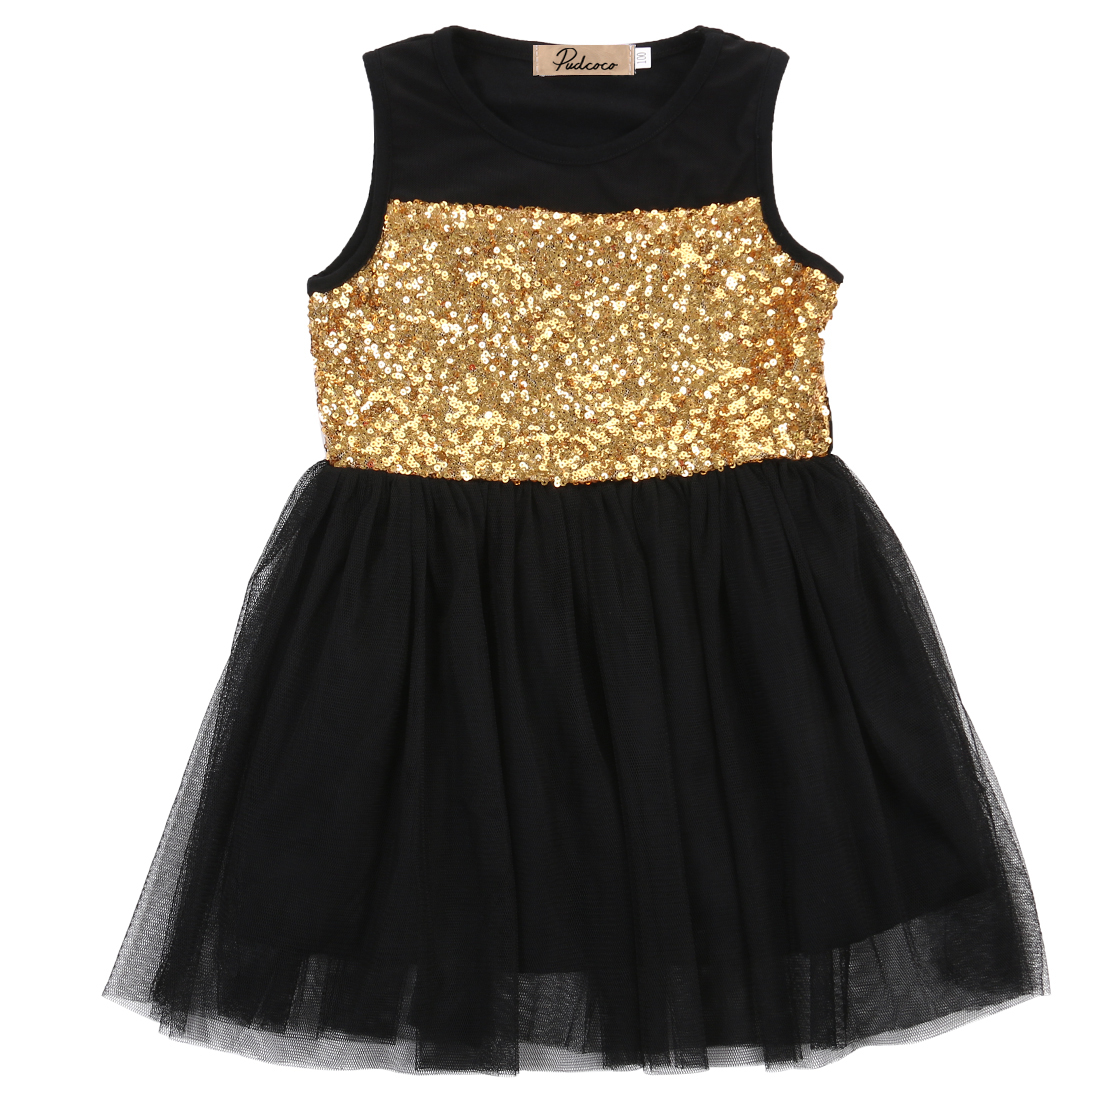 Black dress for baby girl - Summer Lace Mini New Baby Kids Girls Toddler Dresses Princess Pageant Party Black Sequined Gold Formal